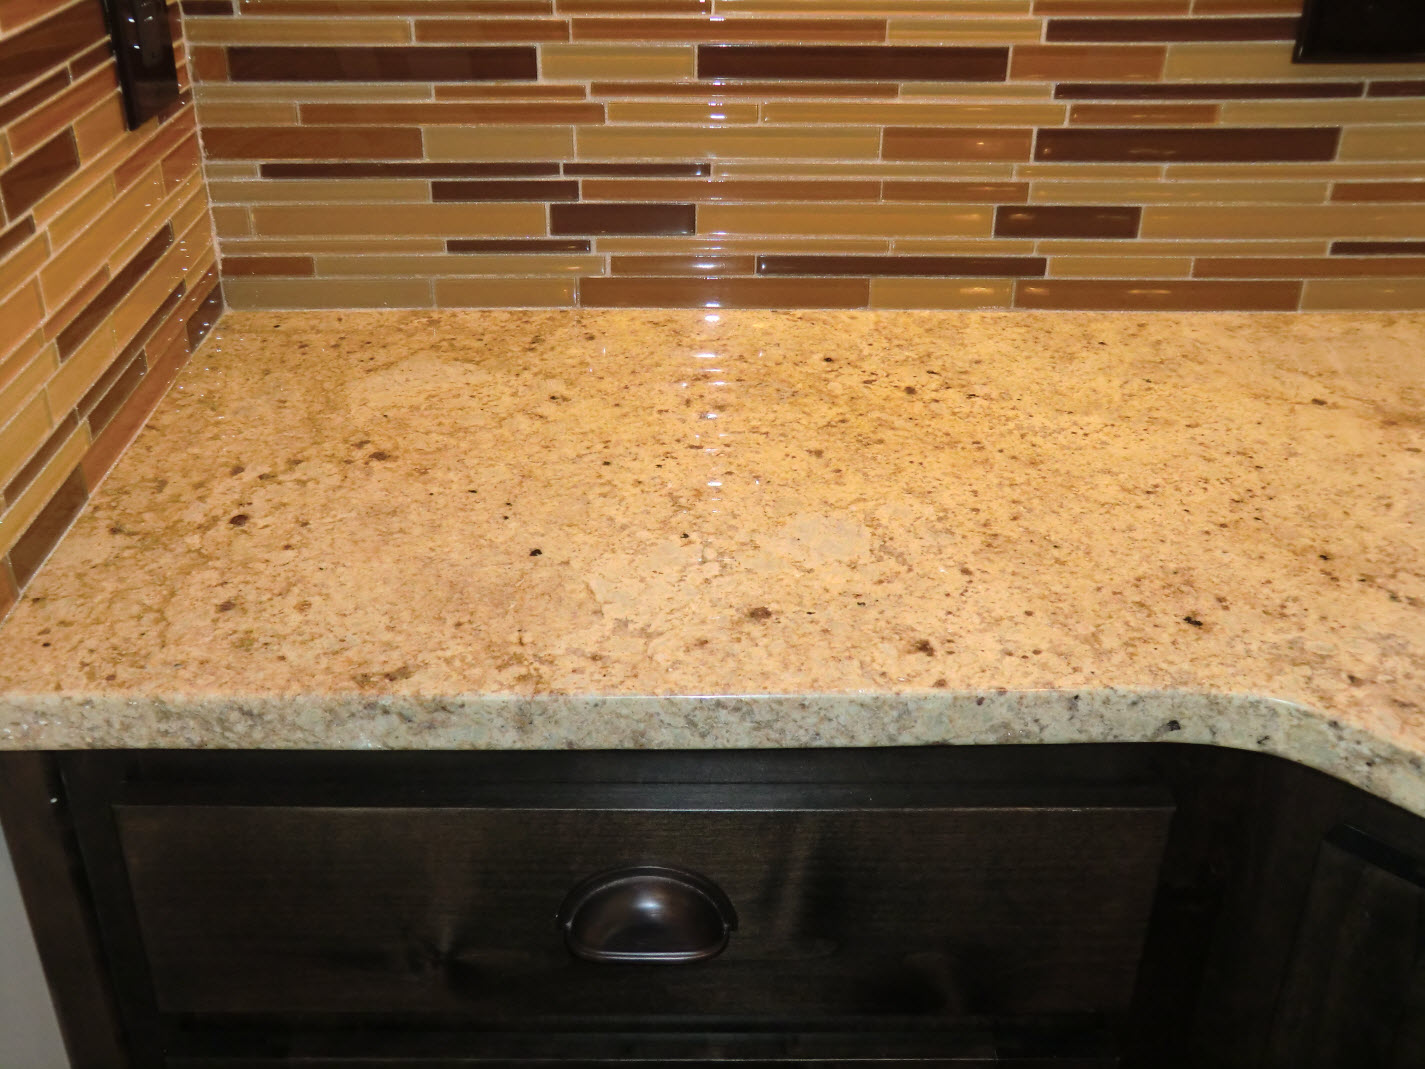 - Close Up Of Cabinet, Countertop & Glass Tile Backsplash, Glowing